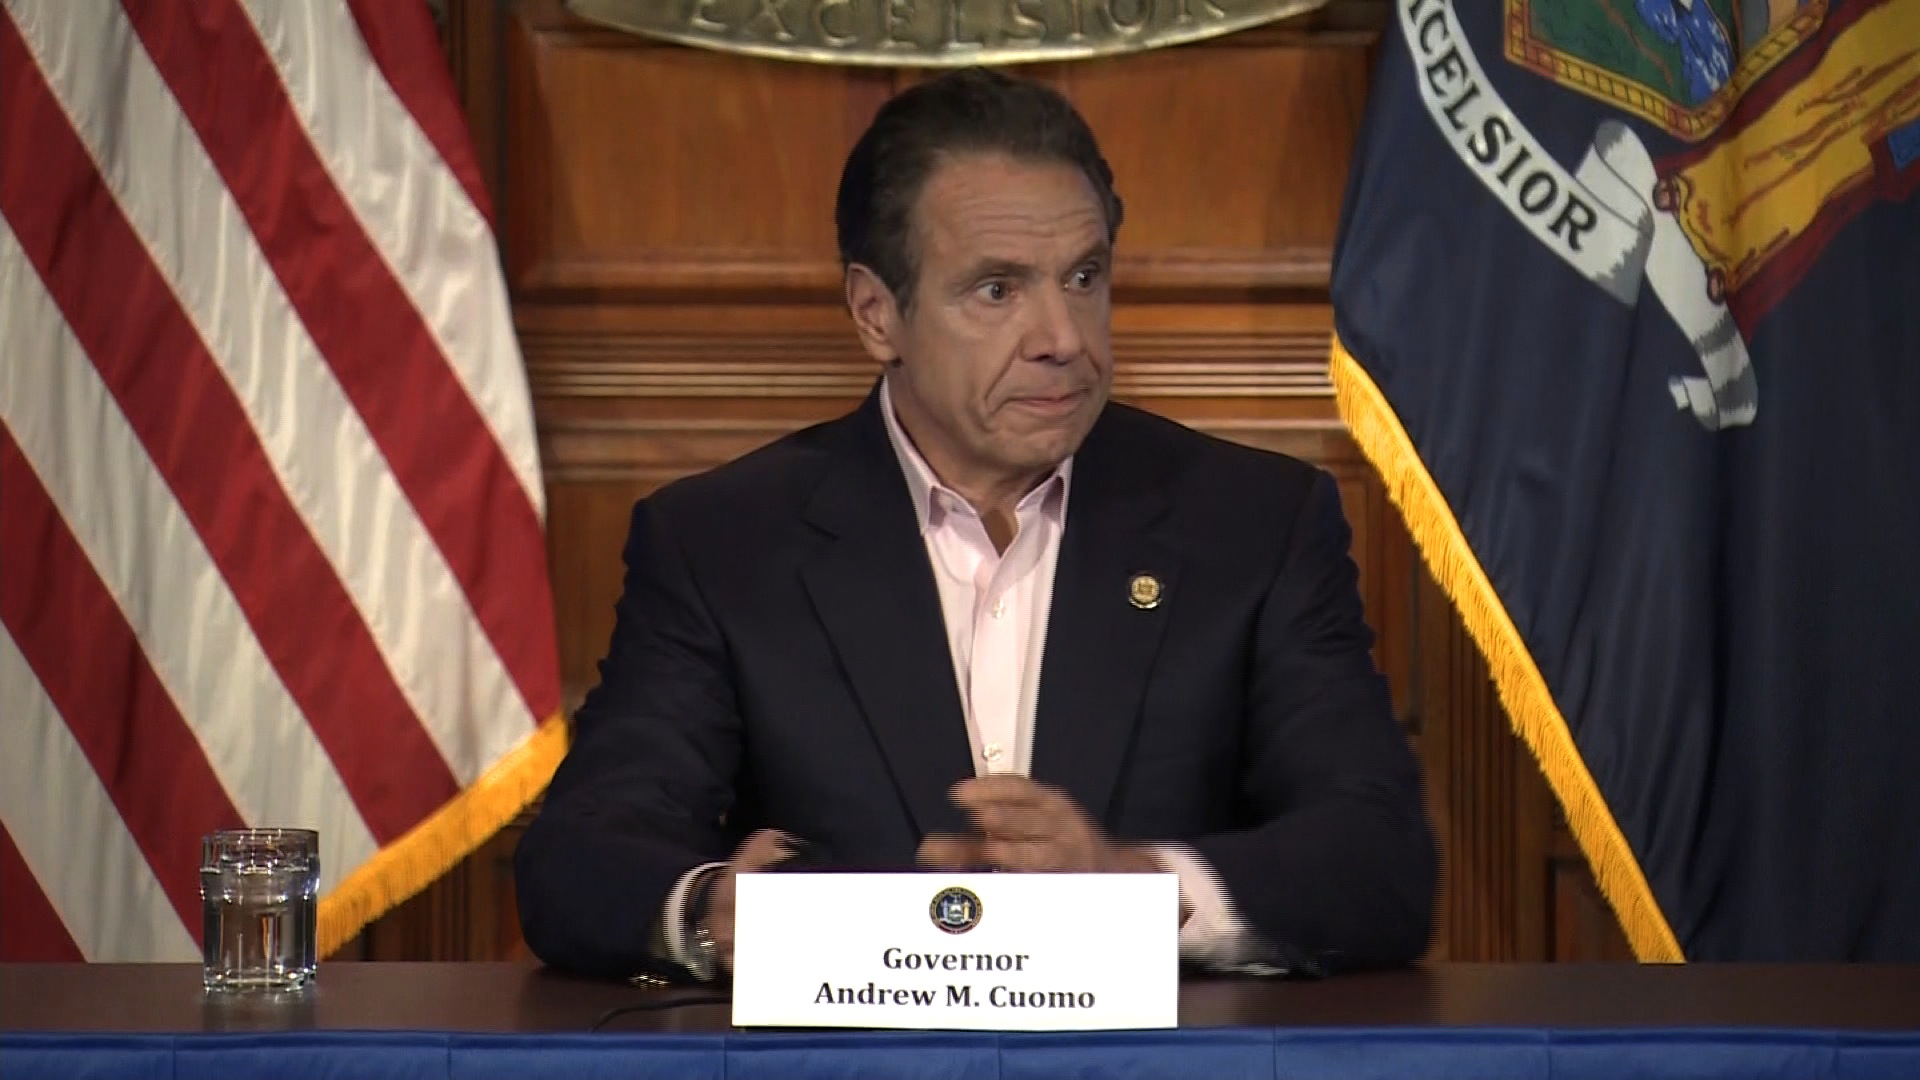 New York Governor plots staged reviving system